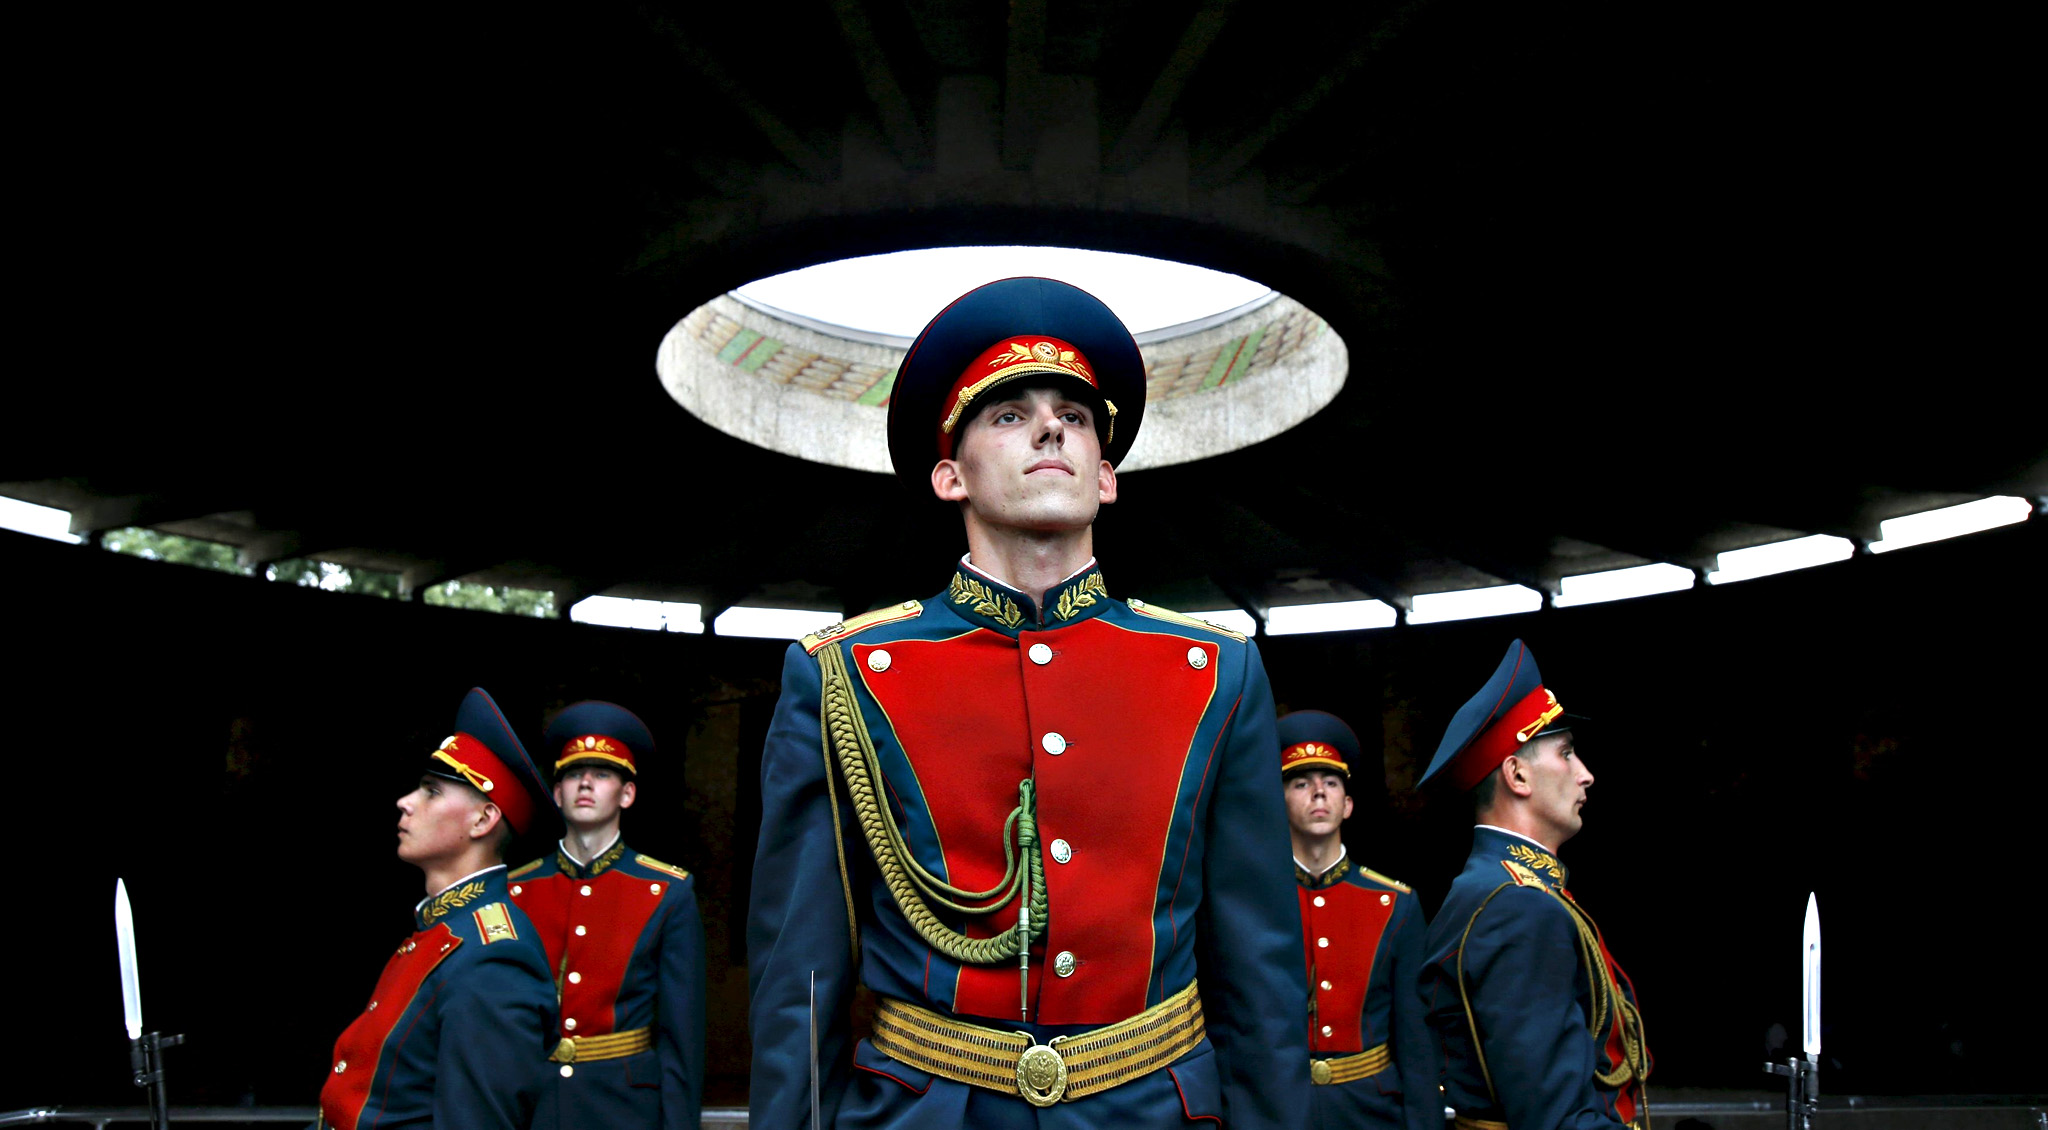 Members of the Russian honor guard perform ceremonial change-over at Military Glory hall of Mamayev Kurgan World War Two memorial complex in Volgograd...Members of the Russian honor guard perform a ceremonial change-over at the Military Glory hall of the Mamayev Kurgan (Mamayev Hill) World War Two memorial complex in the city of Volgograd, Russia, July 15, 2015. Russia will host the World Cup soccer tournament for FIFA in 2018